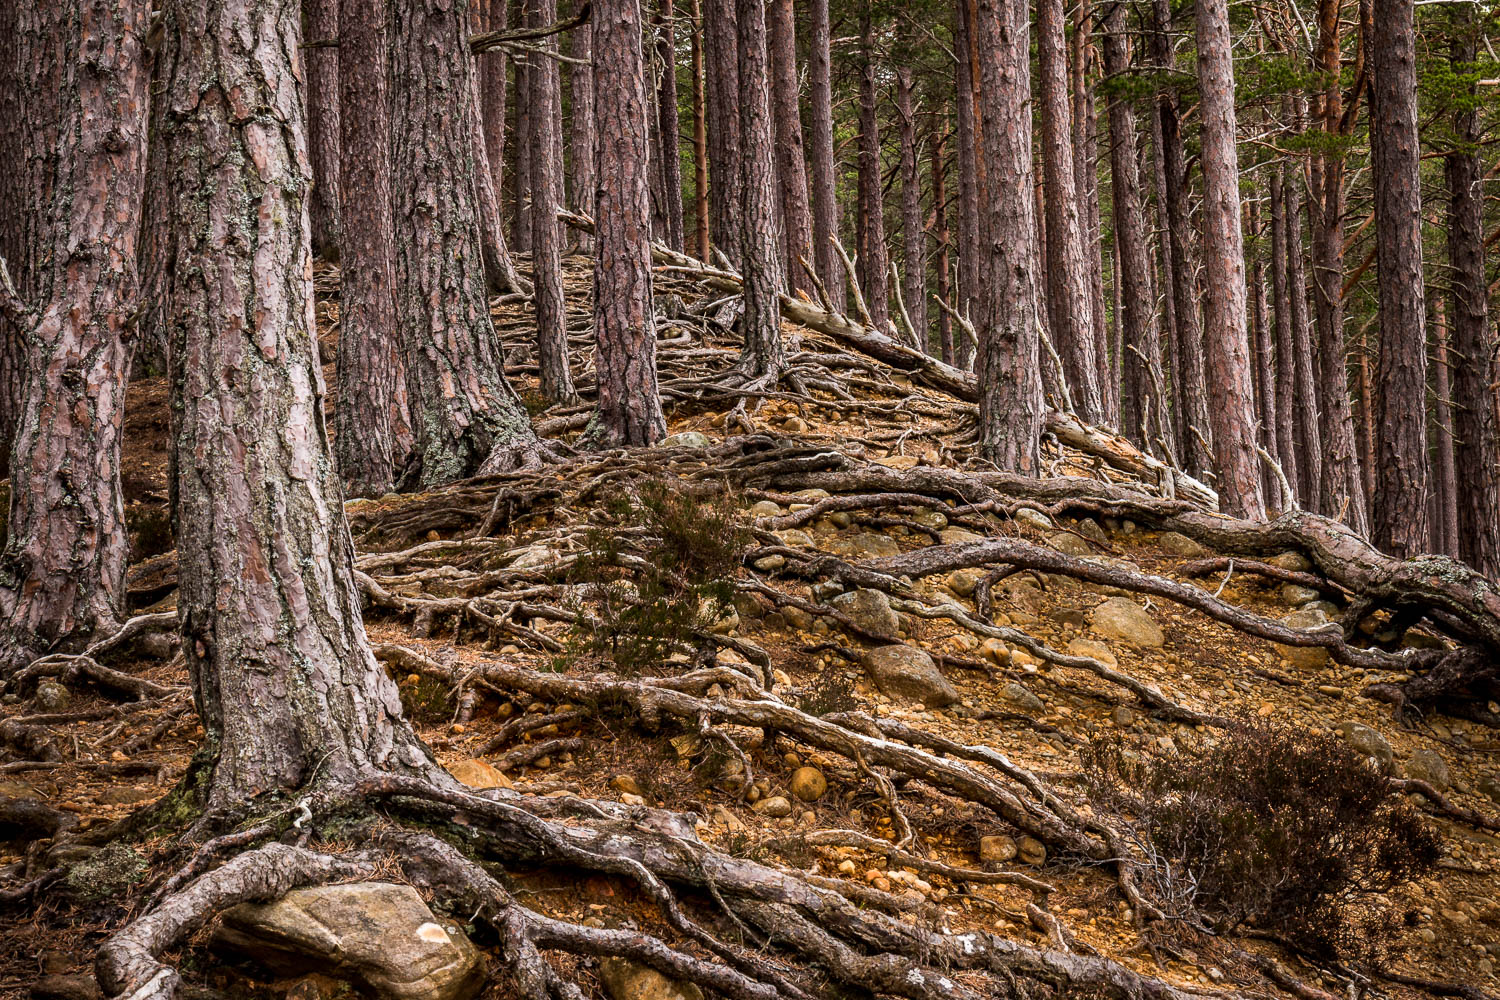 Caledonian Pines, Rothiemurchus Forest